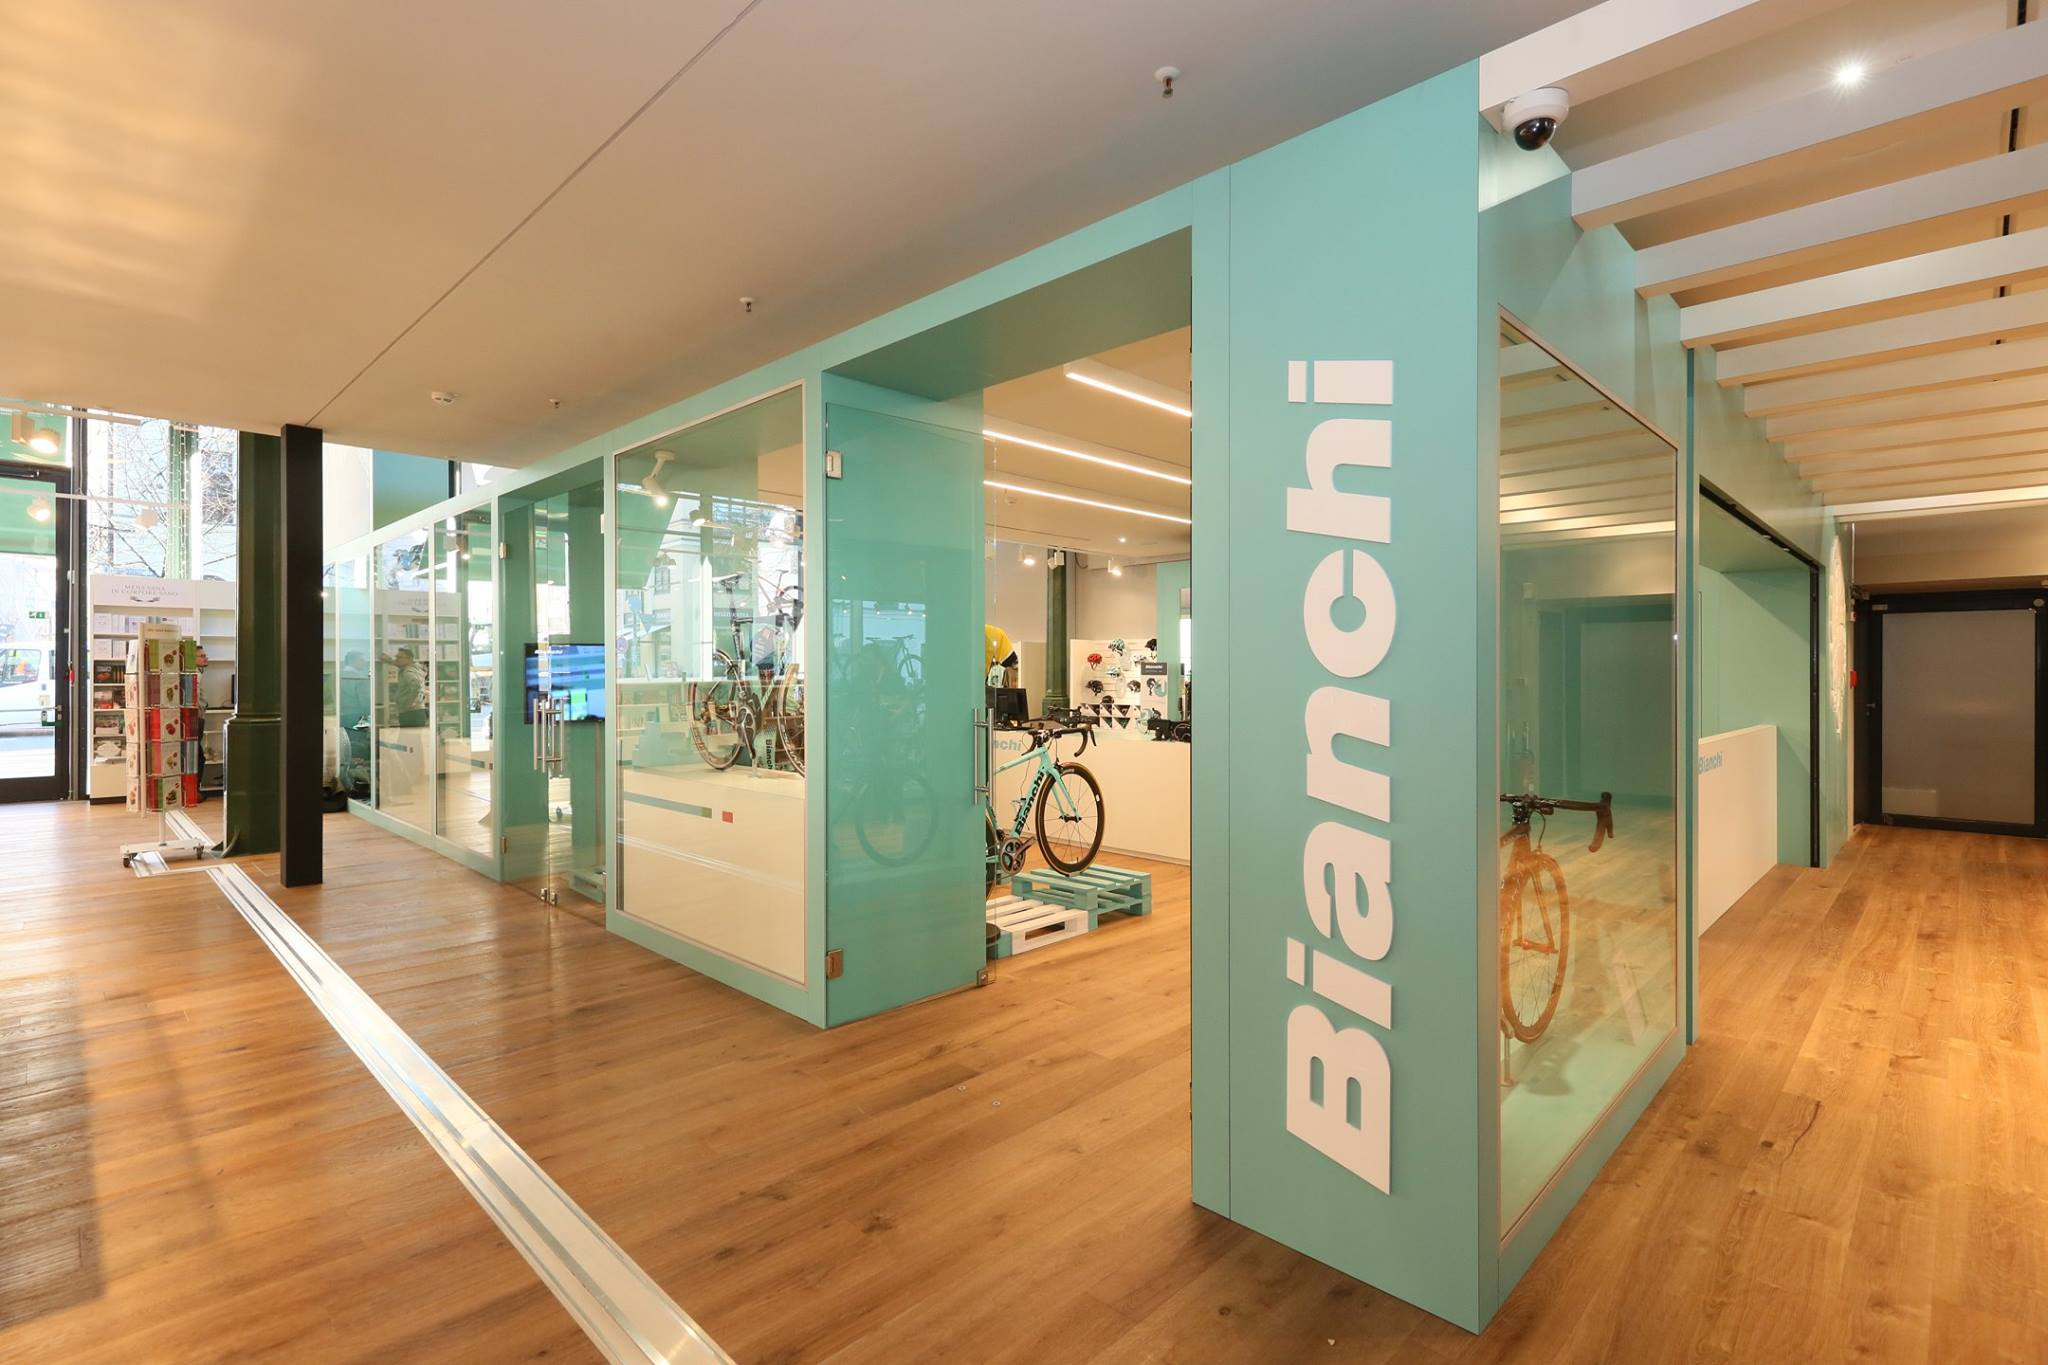 bianchi opens new pop up bike shop in munich. Black Bedroom Furniture Sets. Home Design Ideas